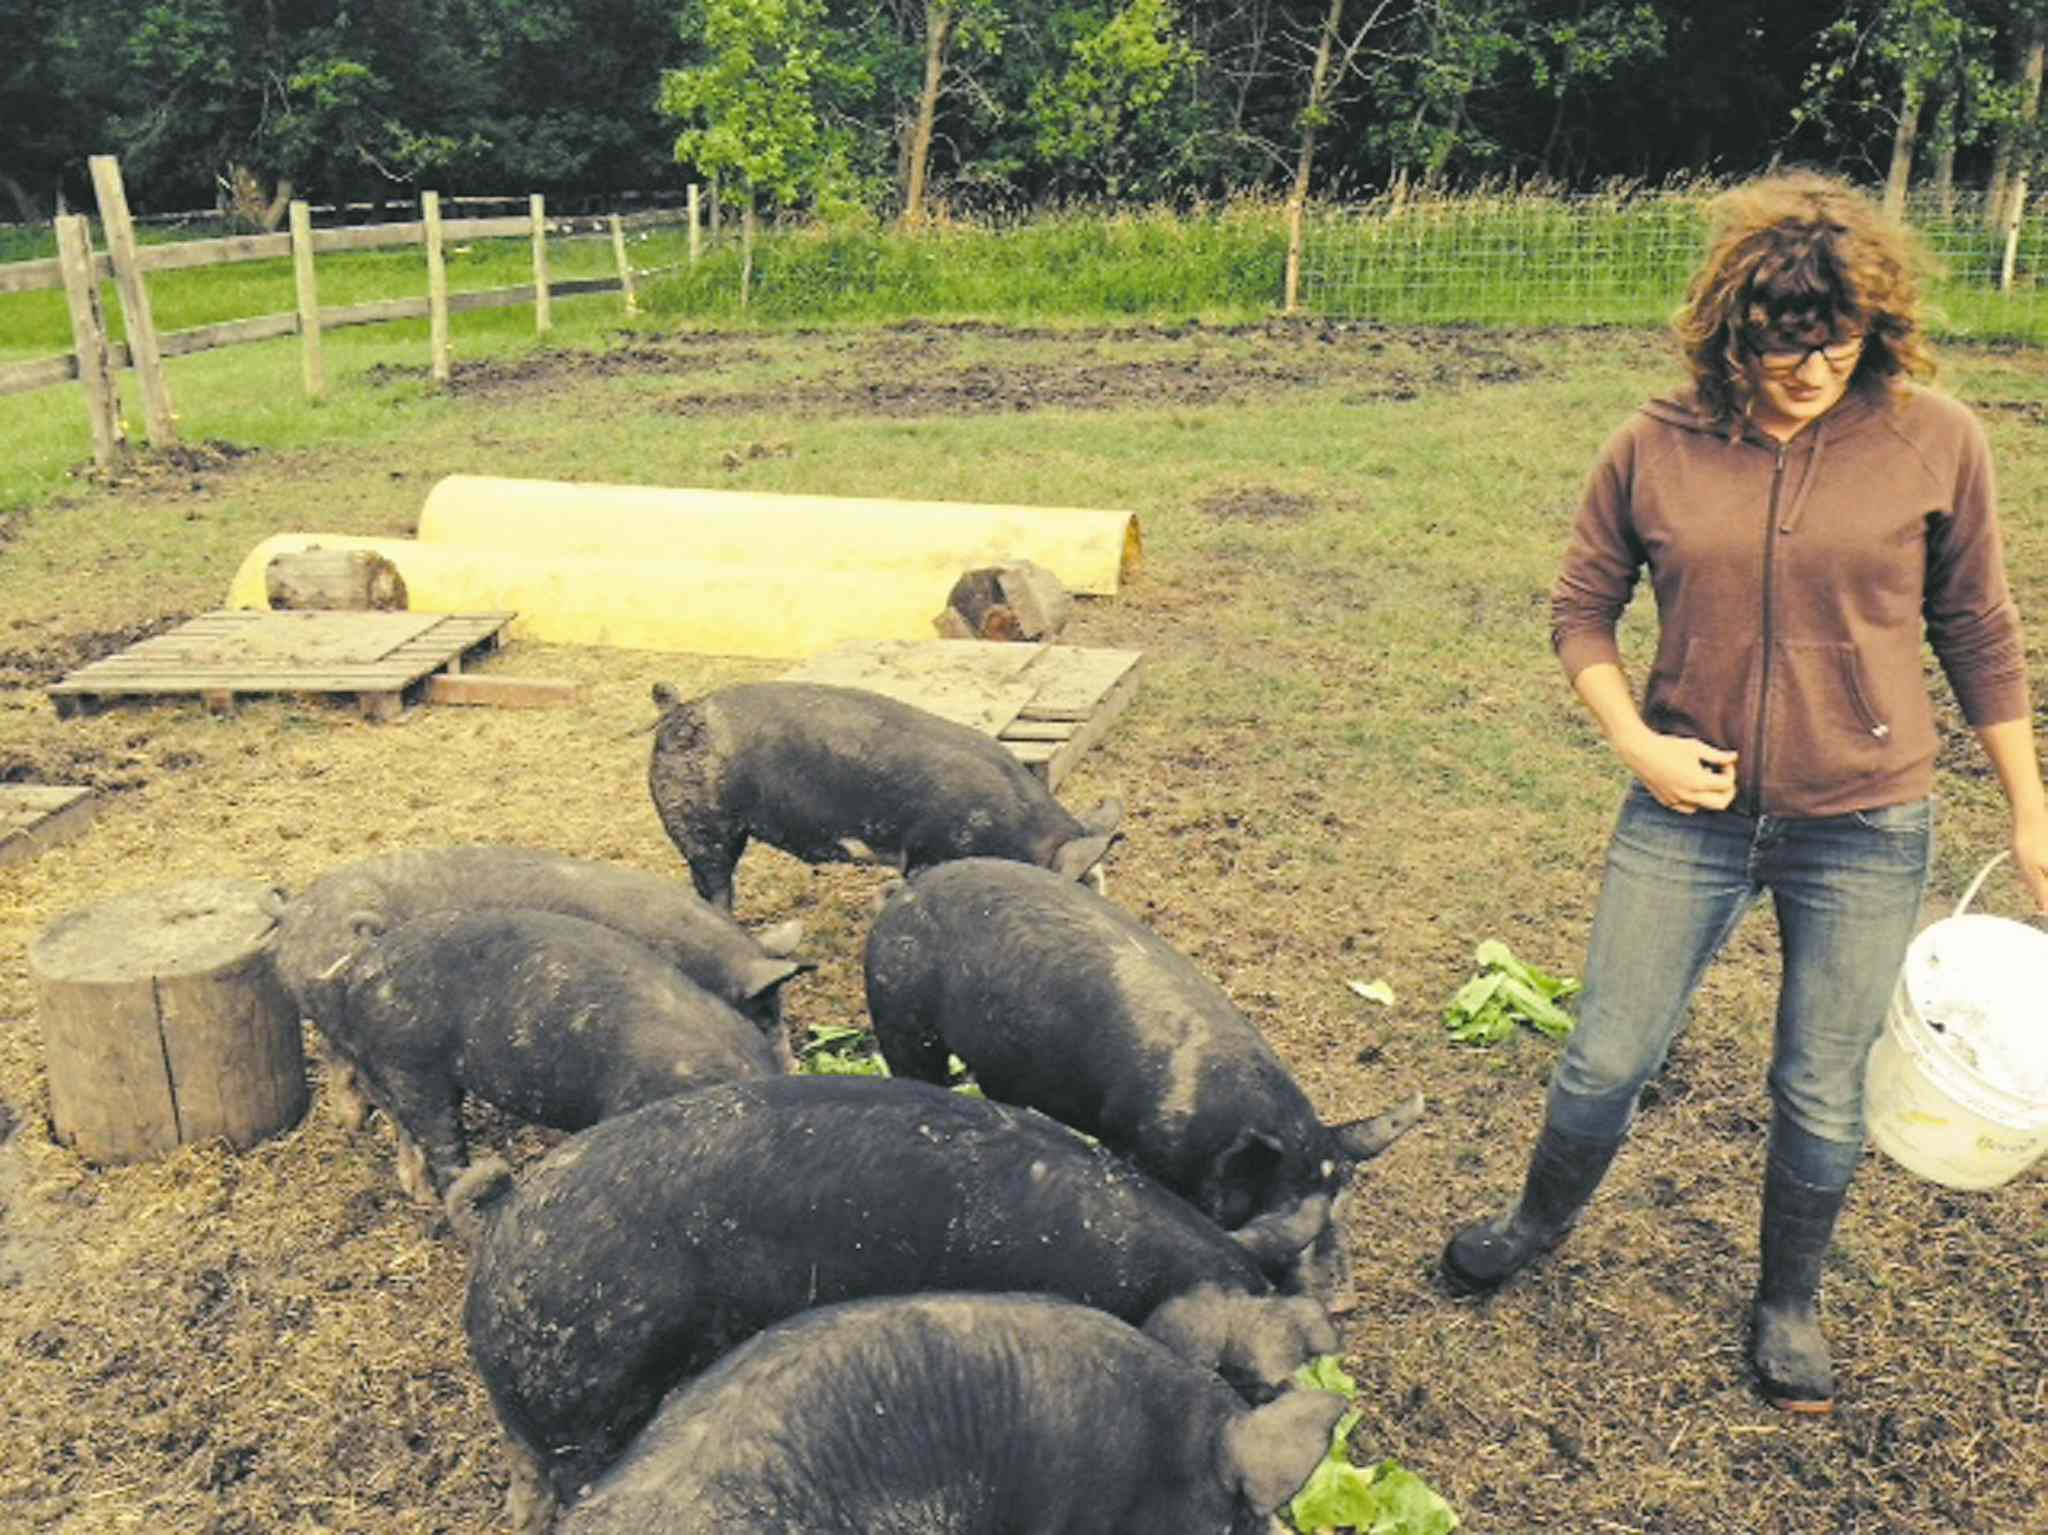 Spain is pictured with some of her pigs.